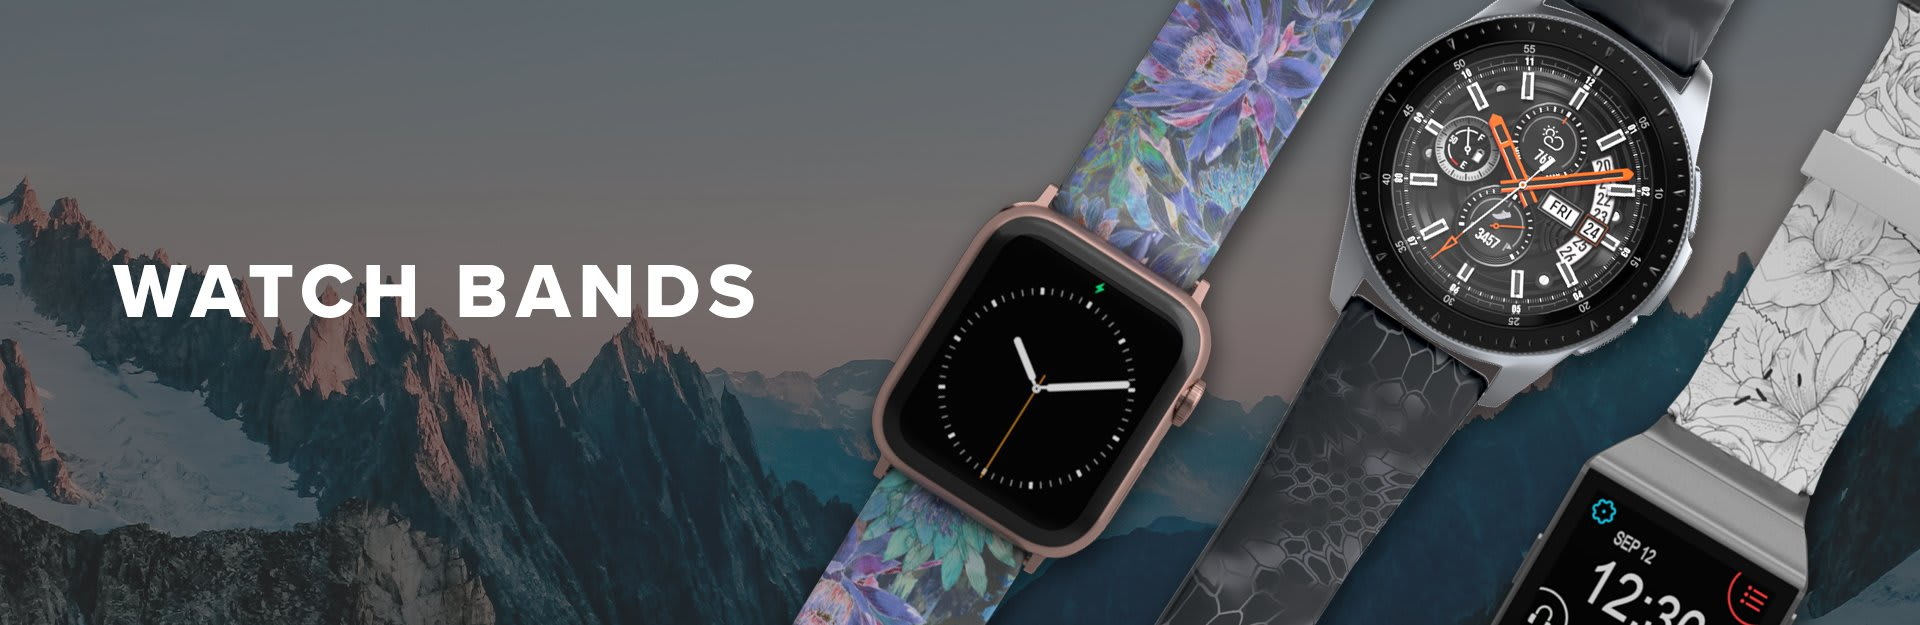 Watch Bands, featuring kryptek samsung watch band and twilight blossom apple watch band